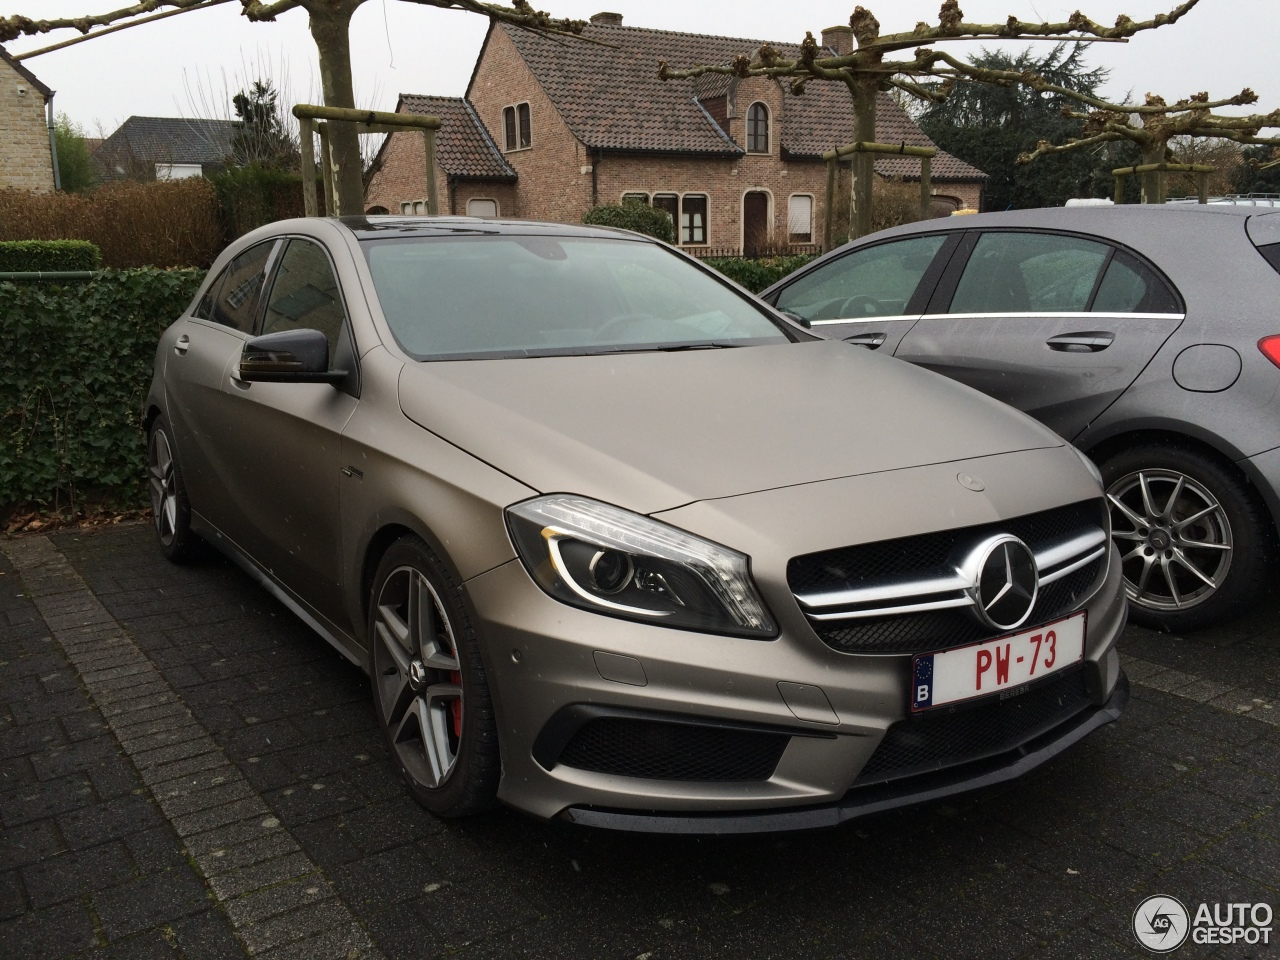 Mercedes benz a 45 amg 9 fvrier 2018 autogespot for Mercedes benz a 45